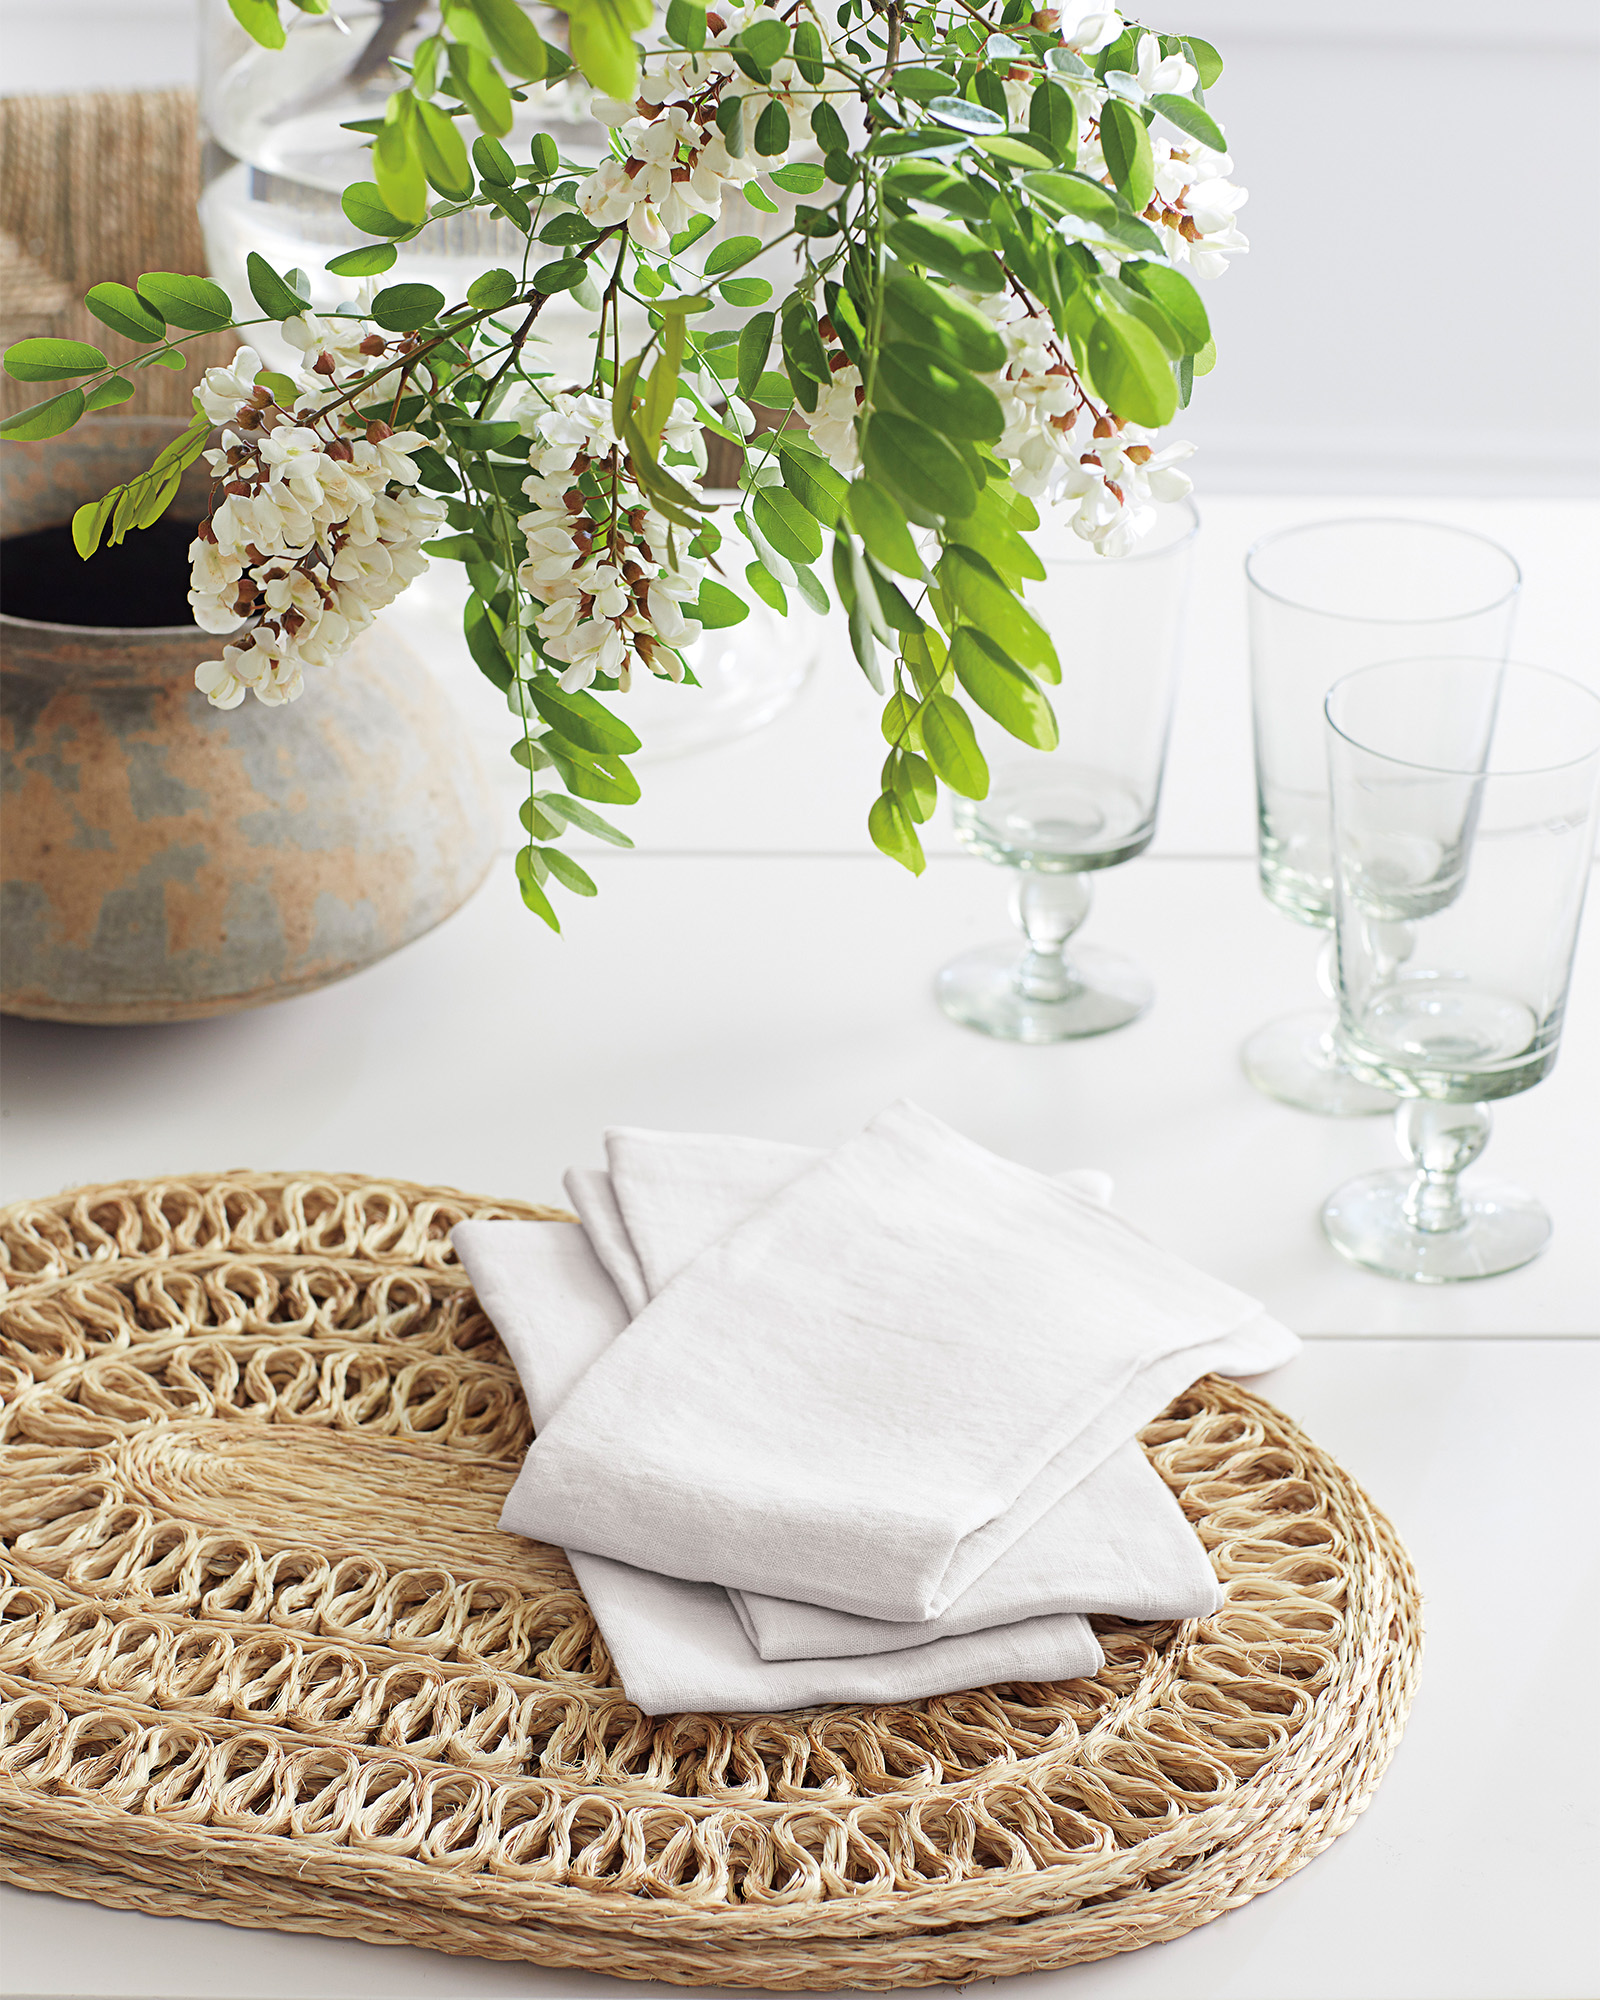 Braided Oval Shape Placemat